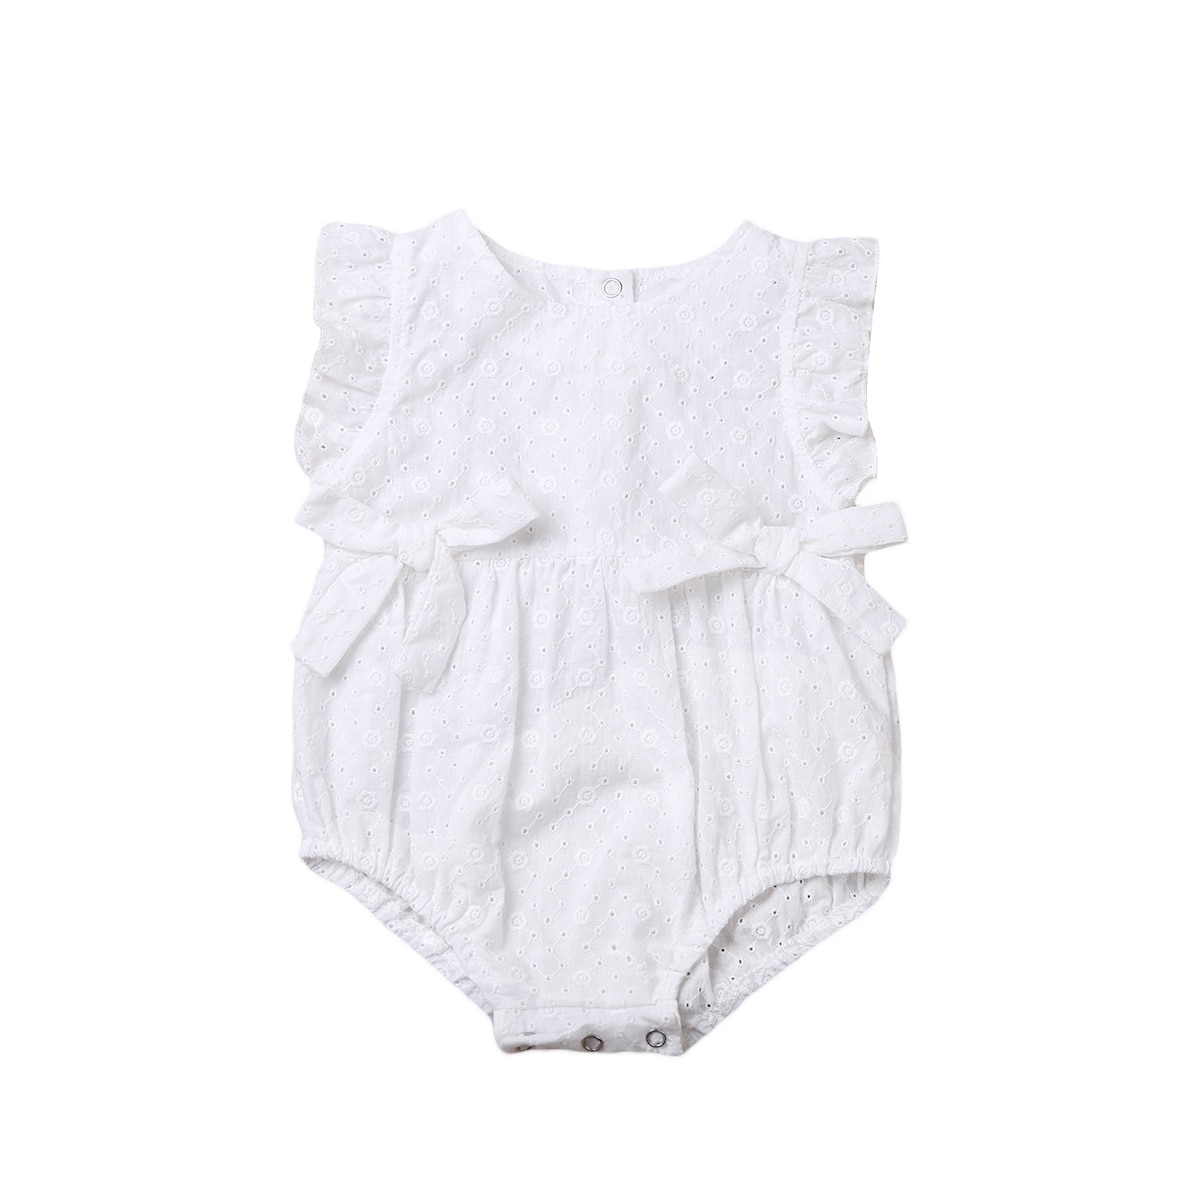 Newborn Infant Baby Girl Clothes Summer Sleeveless Flower Print Hollowing Out Romper Jumpsuit Outfit Sunsuit Clothes 0-24M